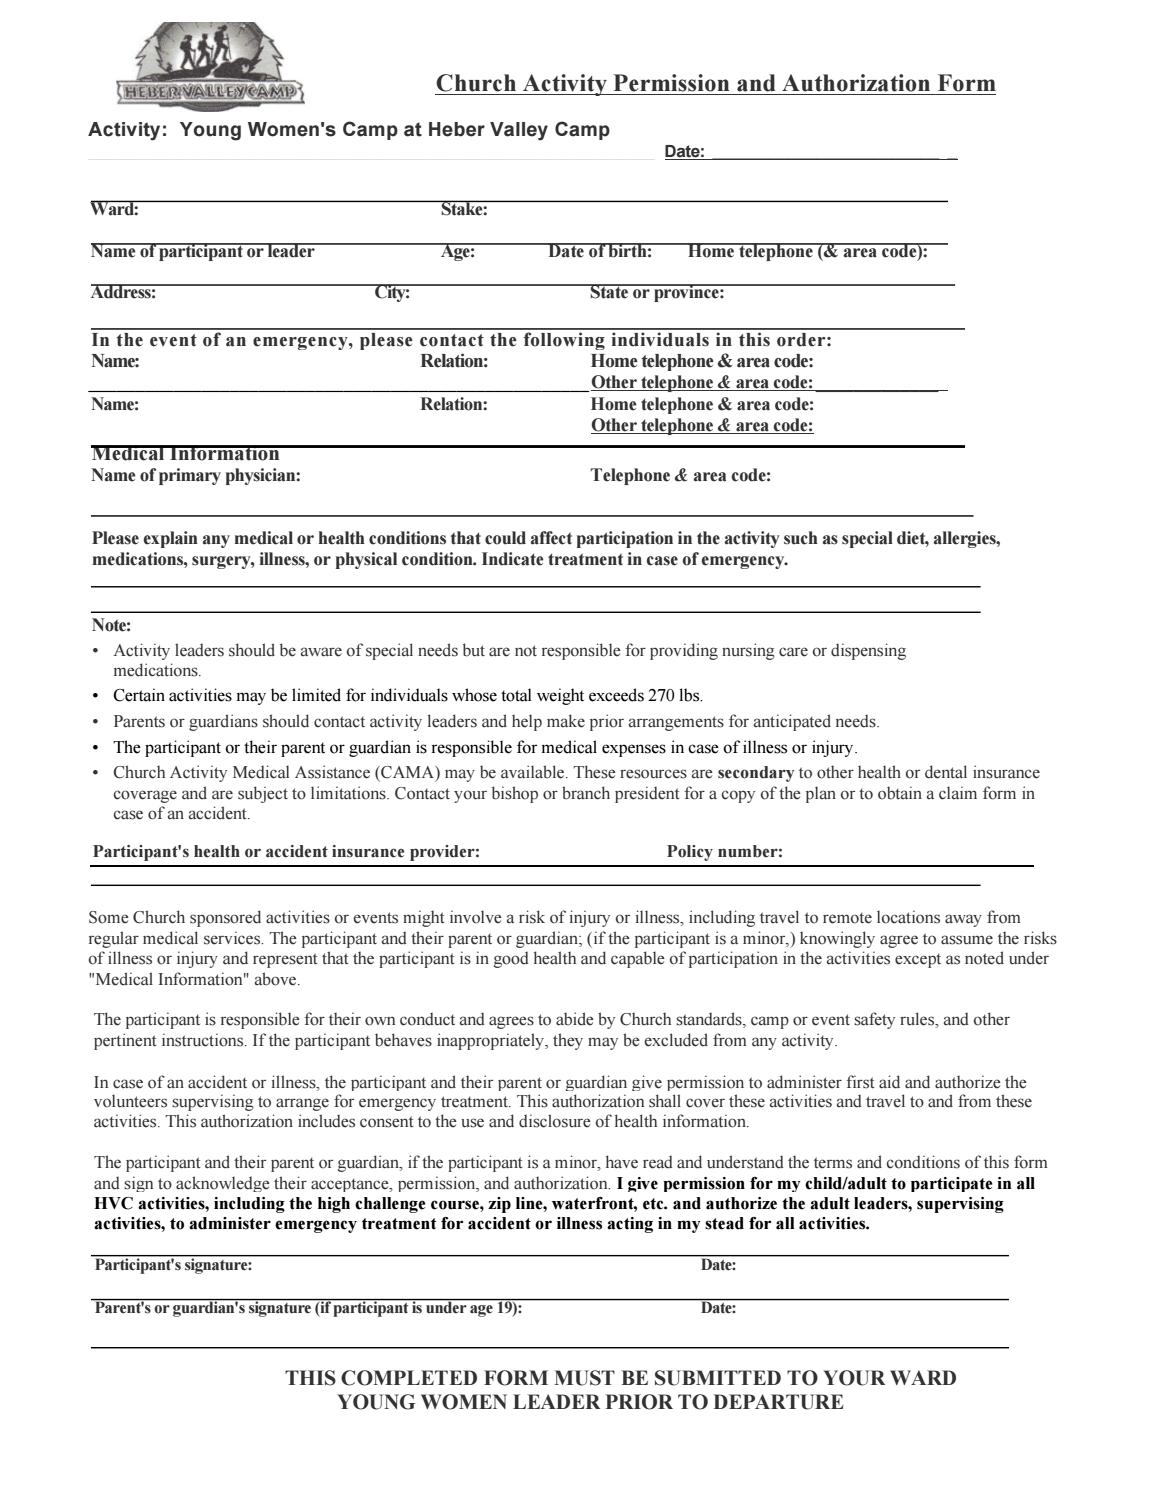 Heber Valley Permission Slip by Ally McQuivey - issuu